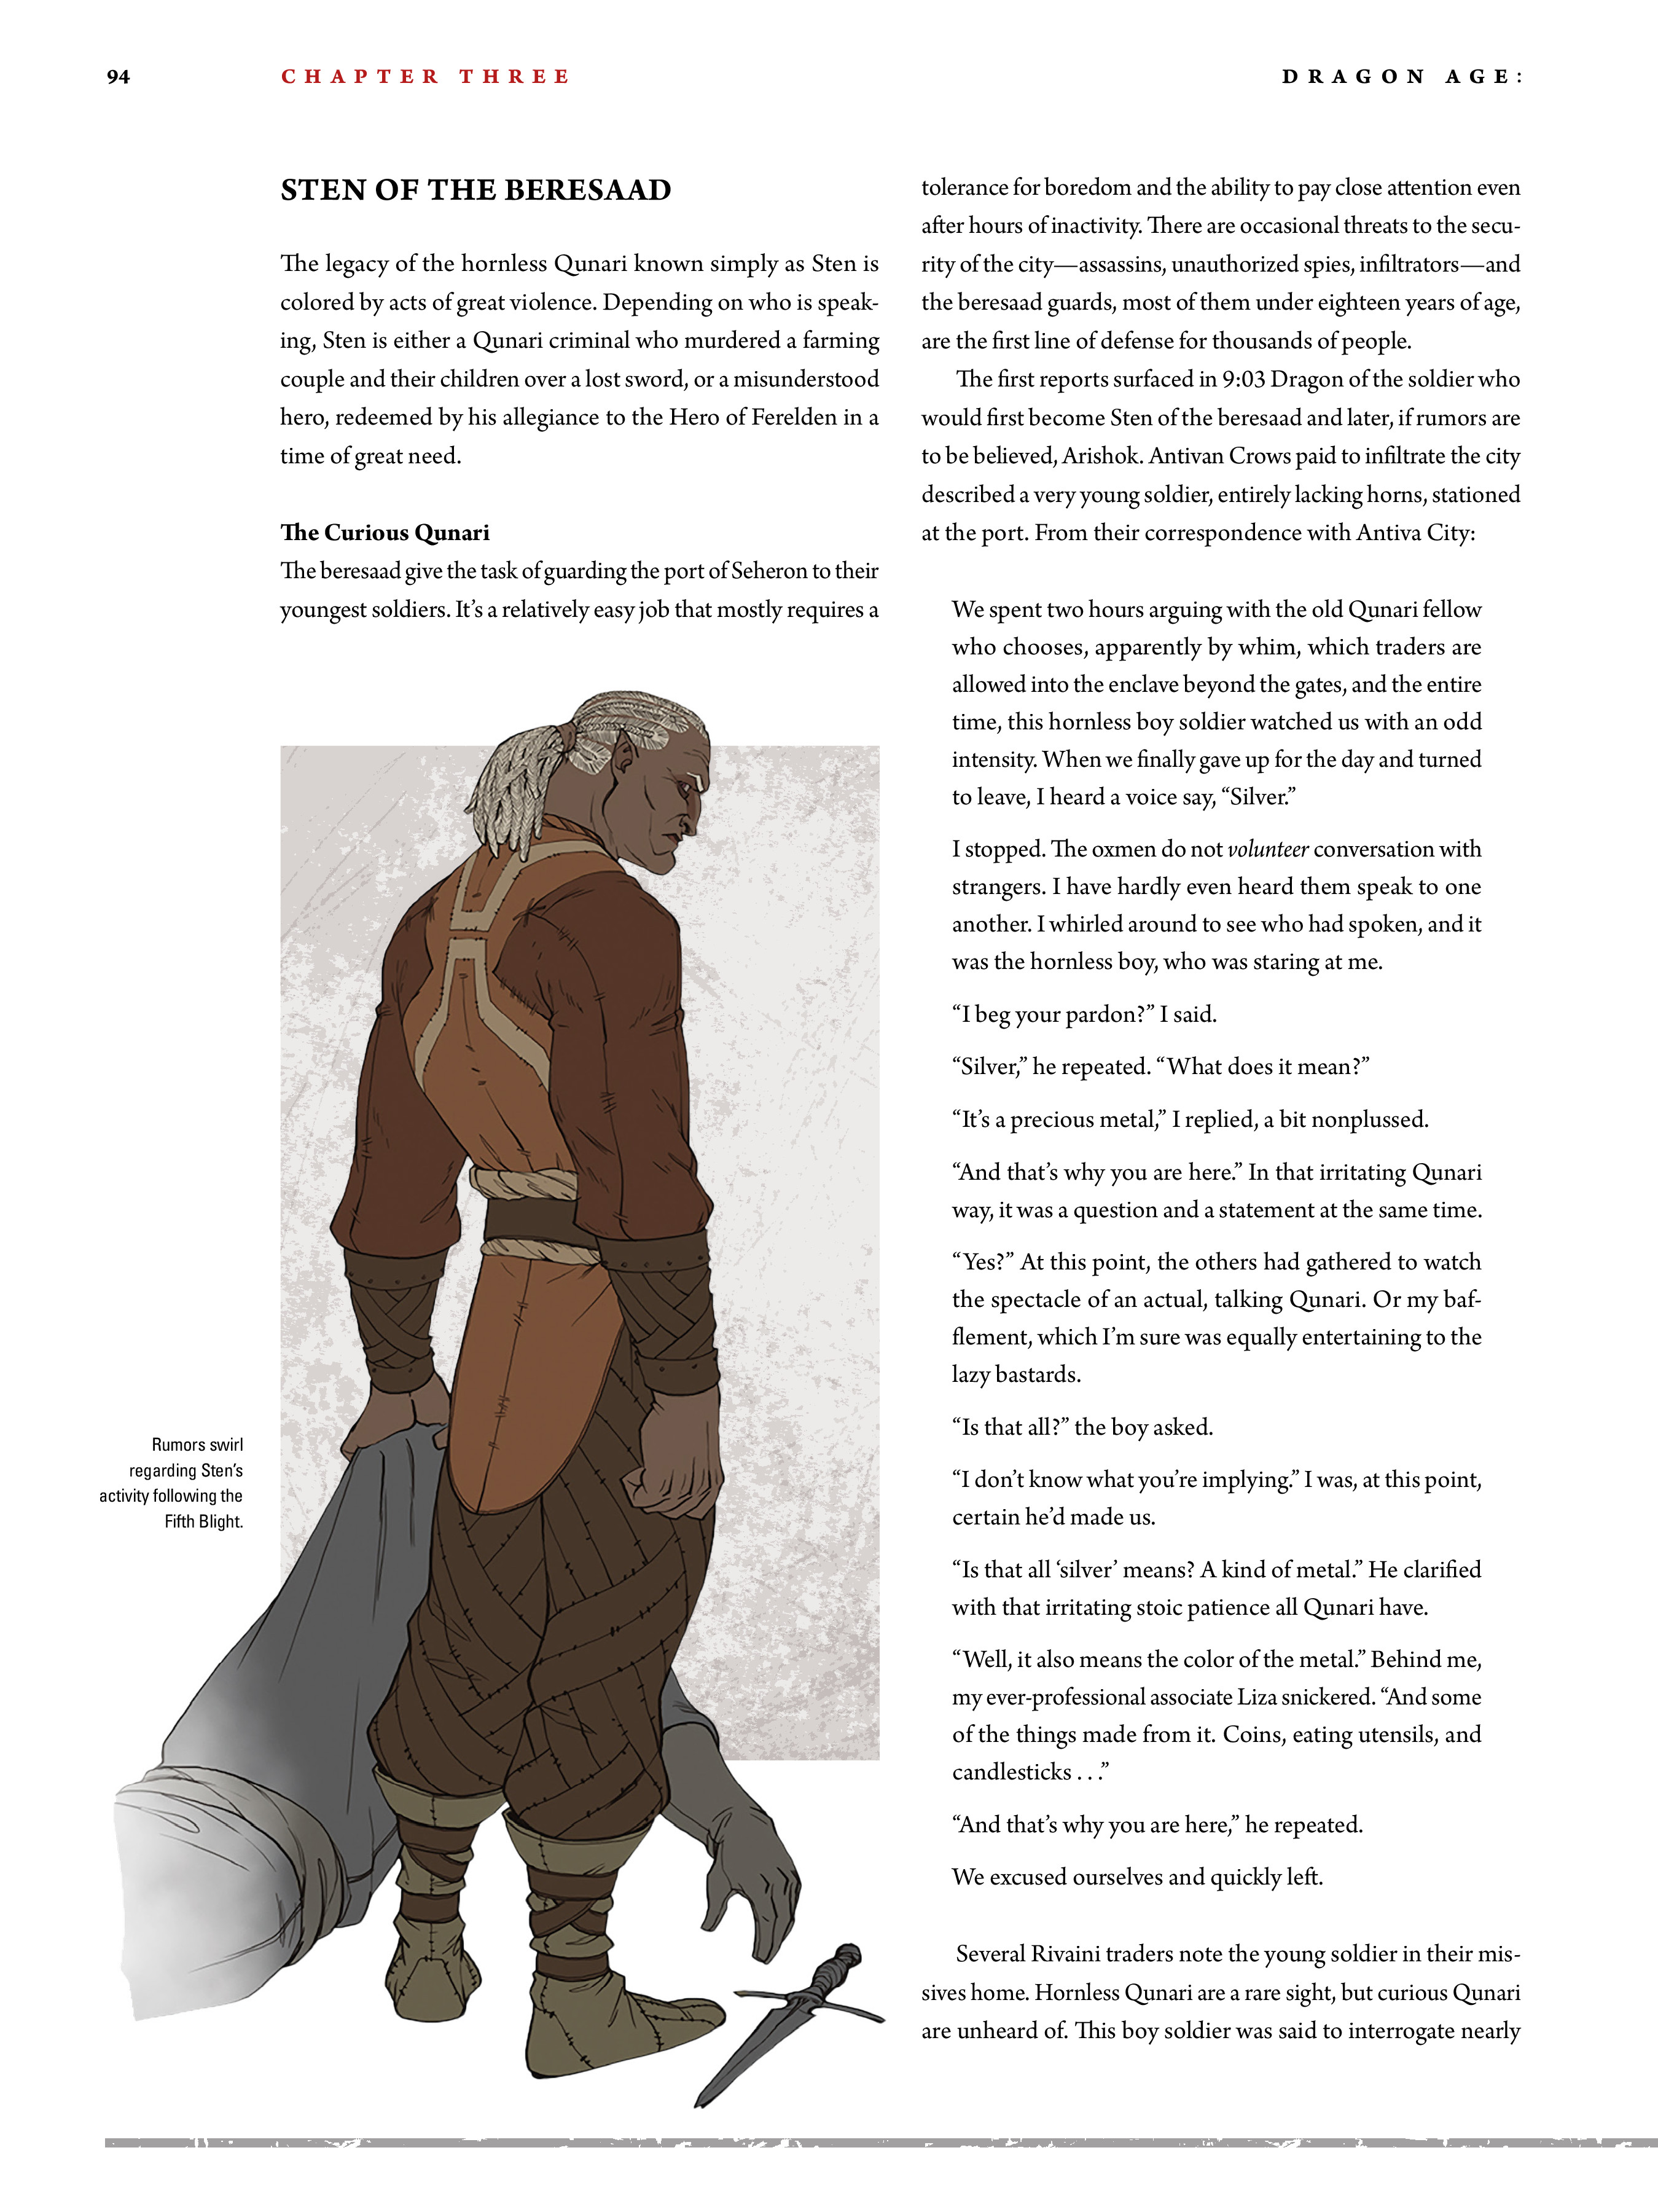 Read online Dragon Age: The World of Thedas comic -  Issue # TPB 2 - 90